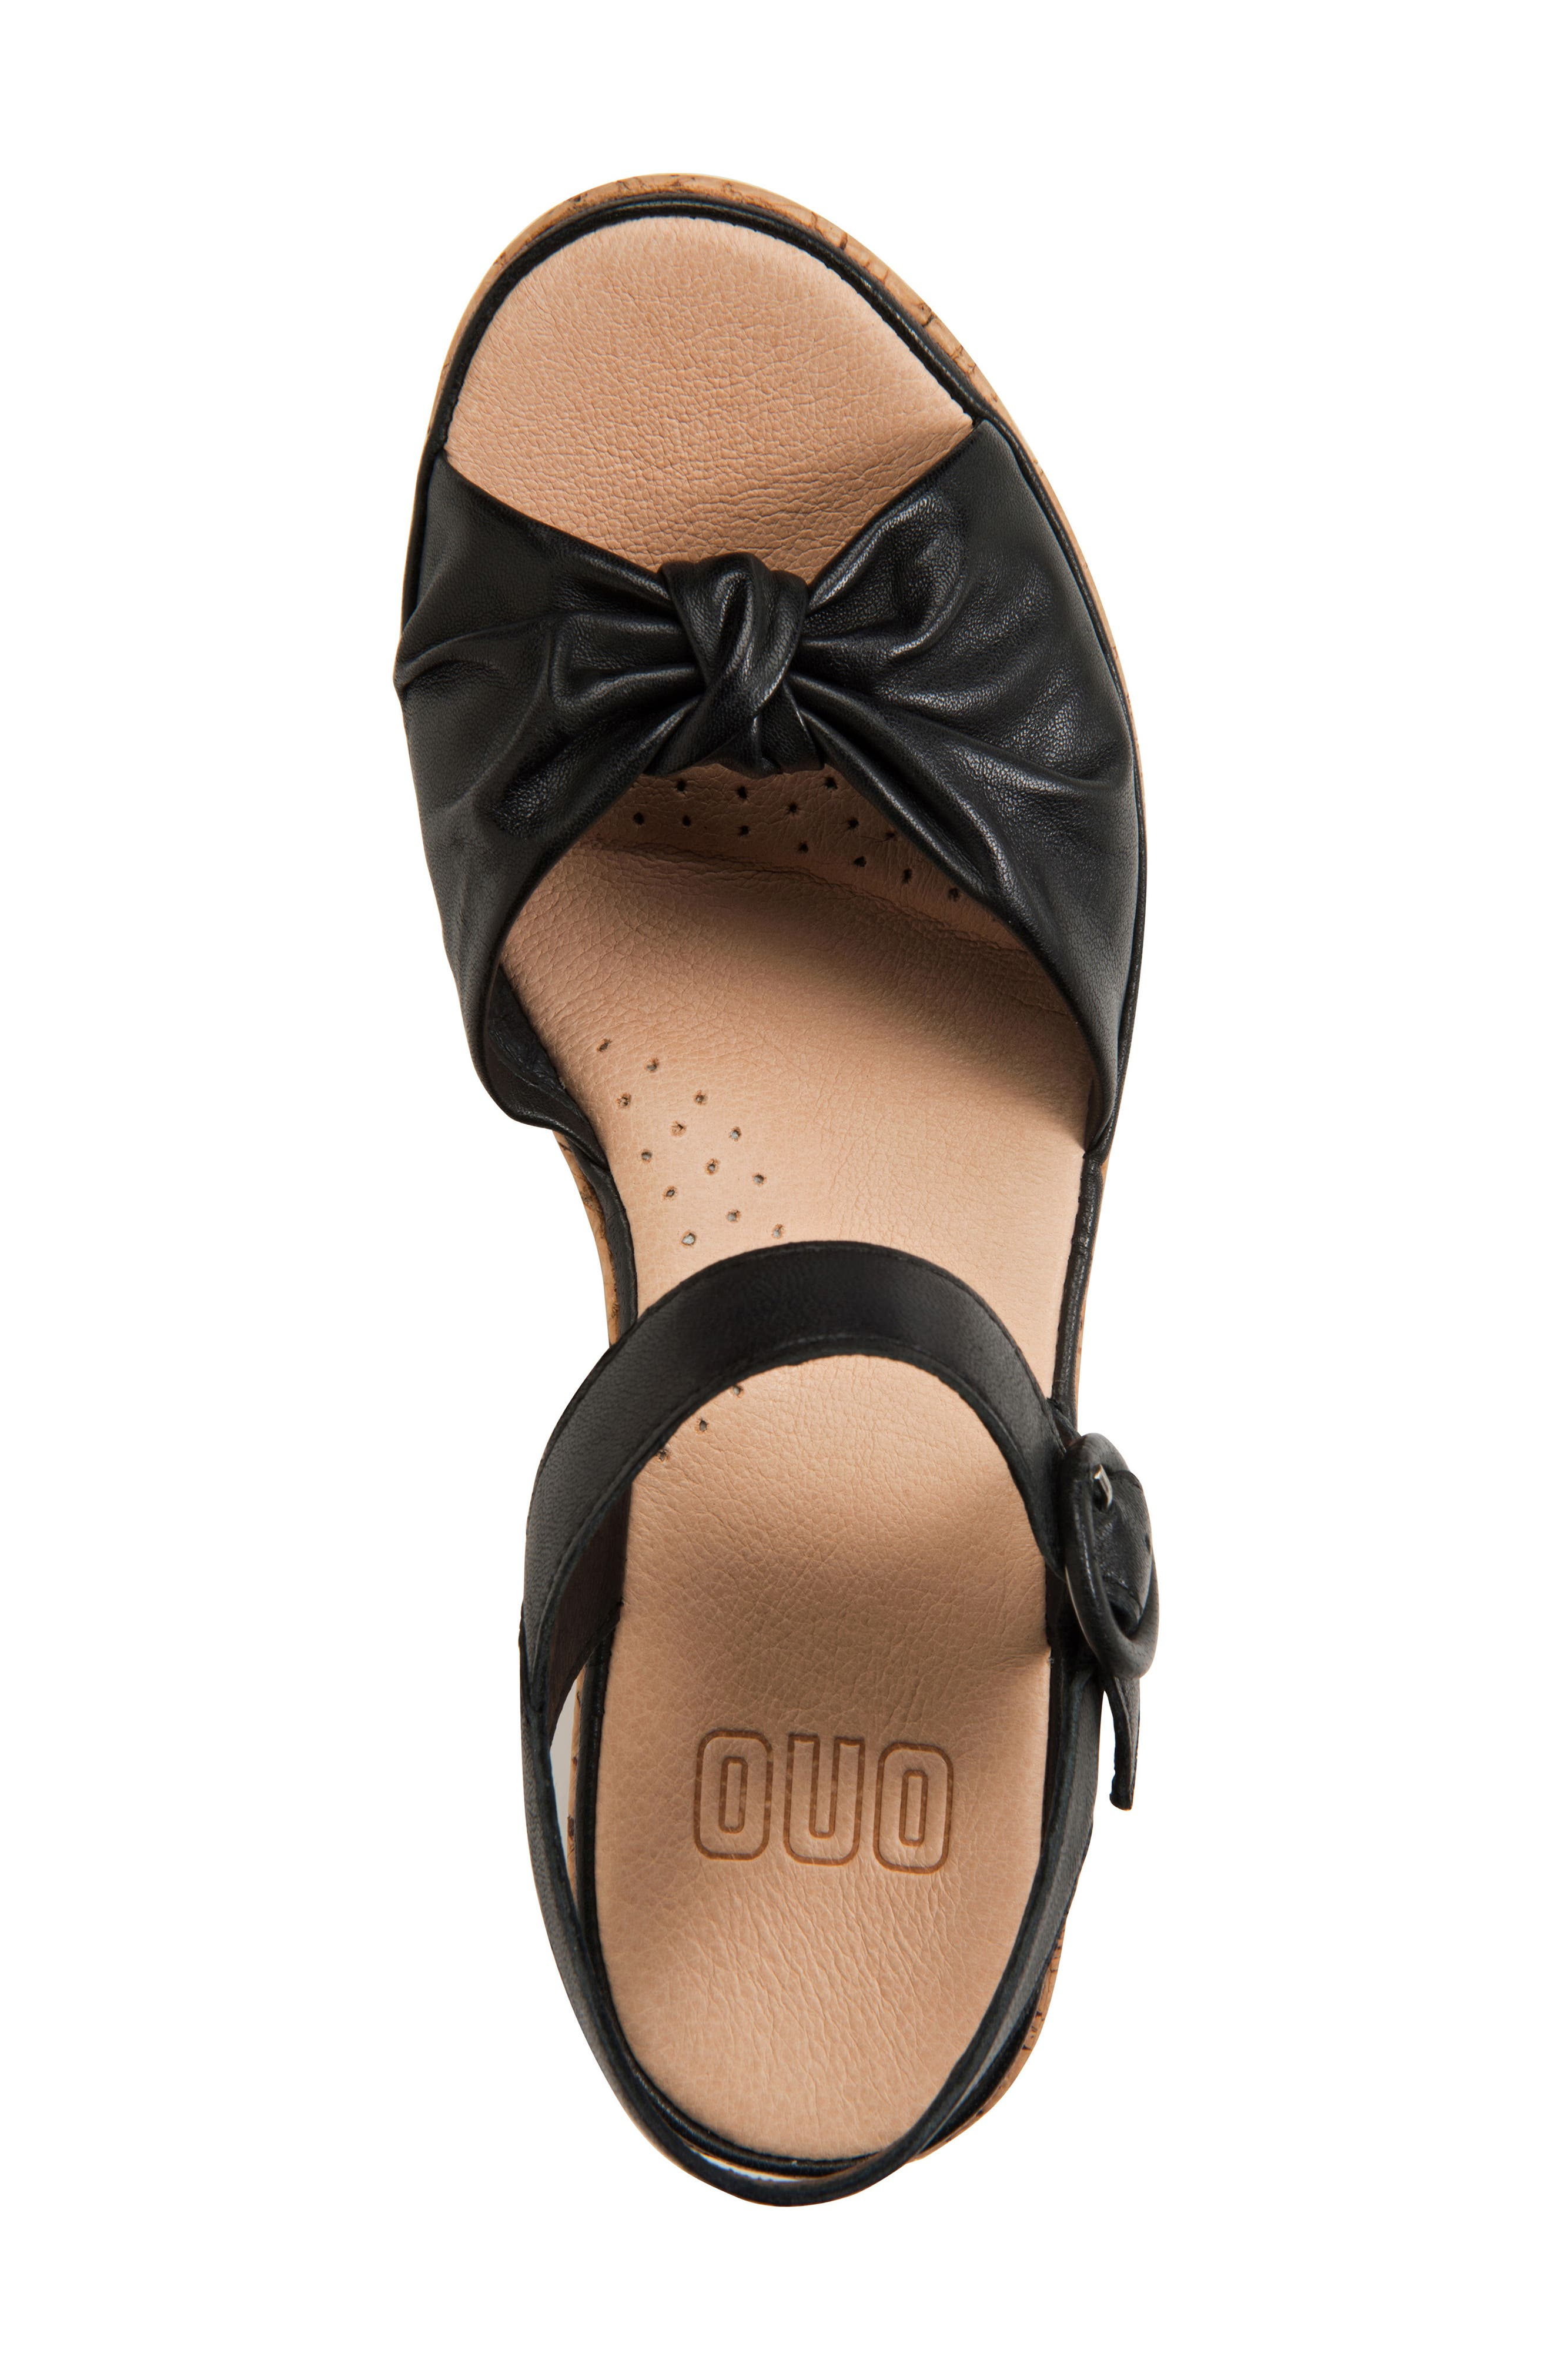 Heavenly Platform Wedge Sandal,                             Alternate thumbnail 5, color,                             BLACK LEATHER